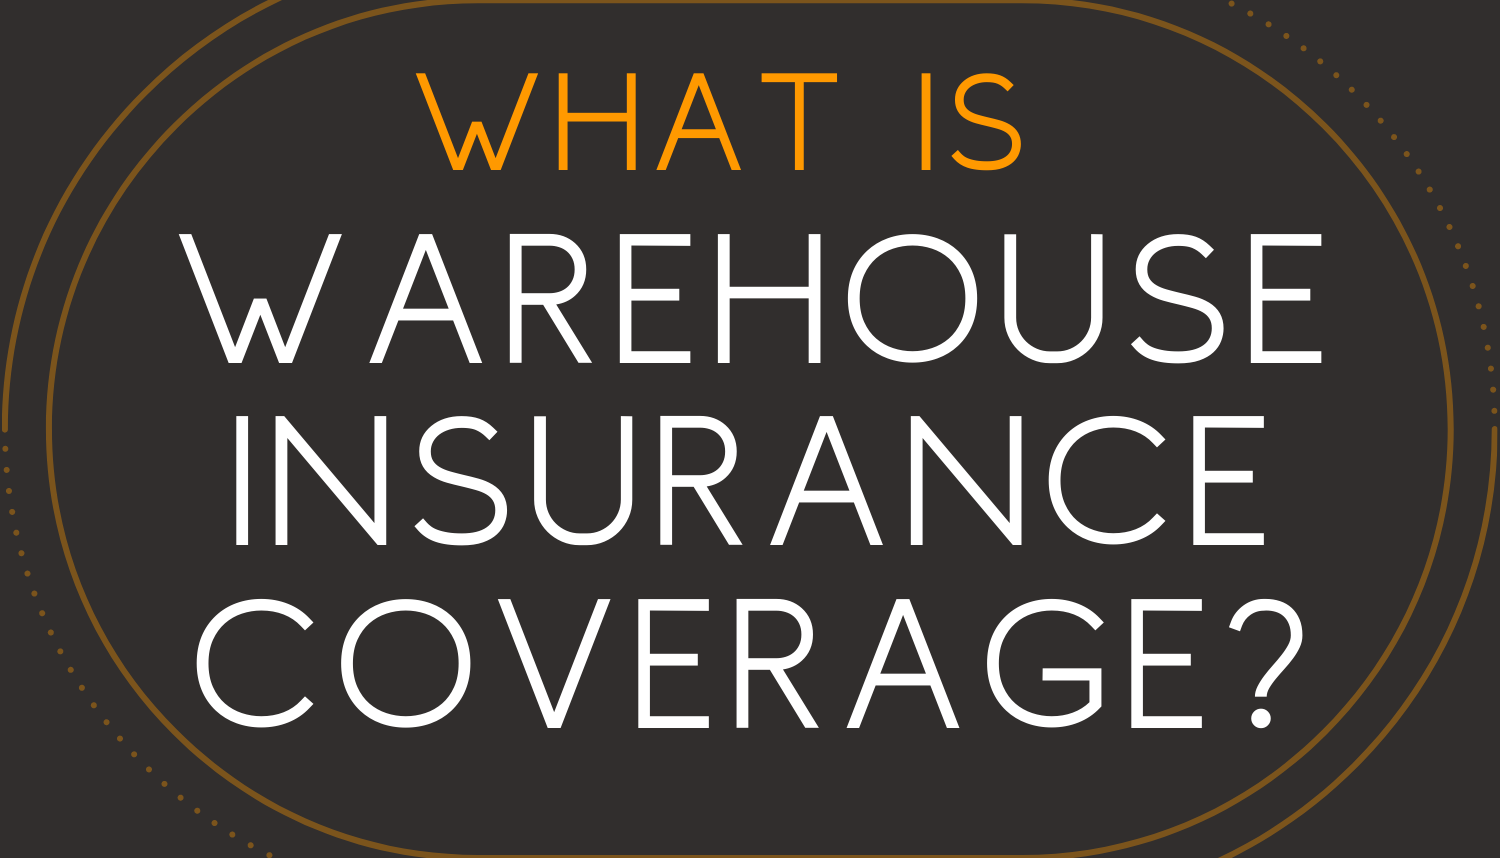 What is Warehouse Insurance Coverage?